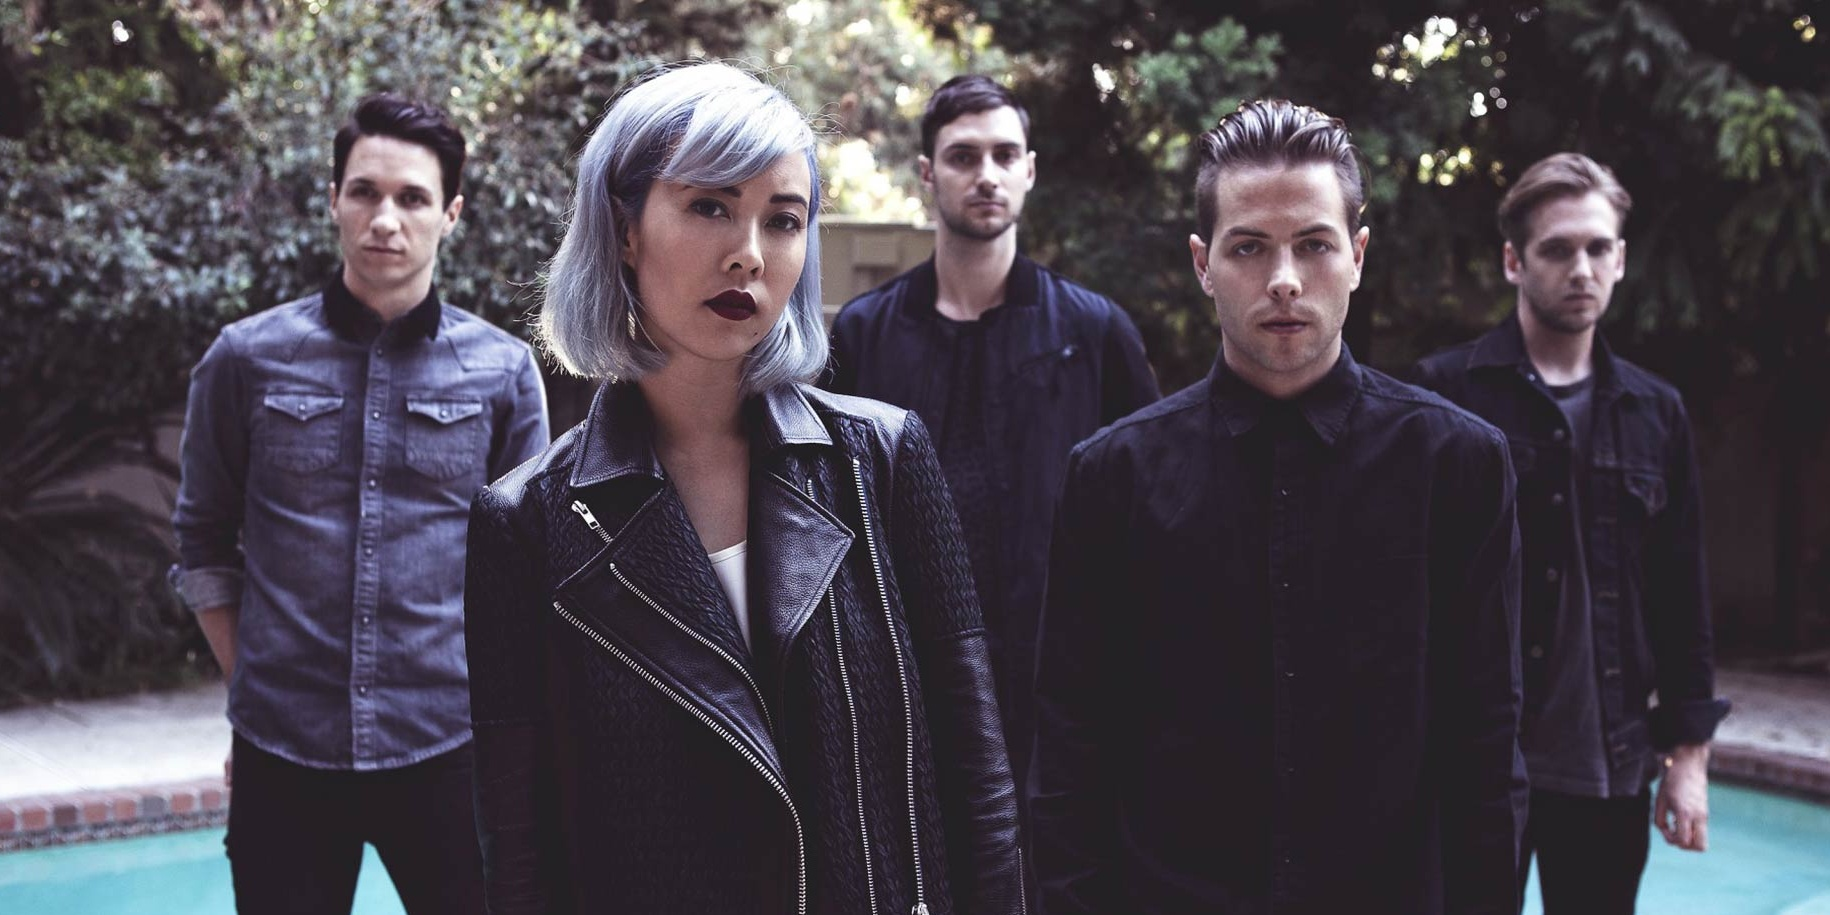 The Naked and Famous draws resignation letters, alternative album covers and Singapore bands